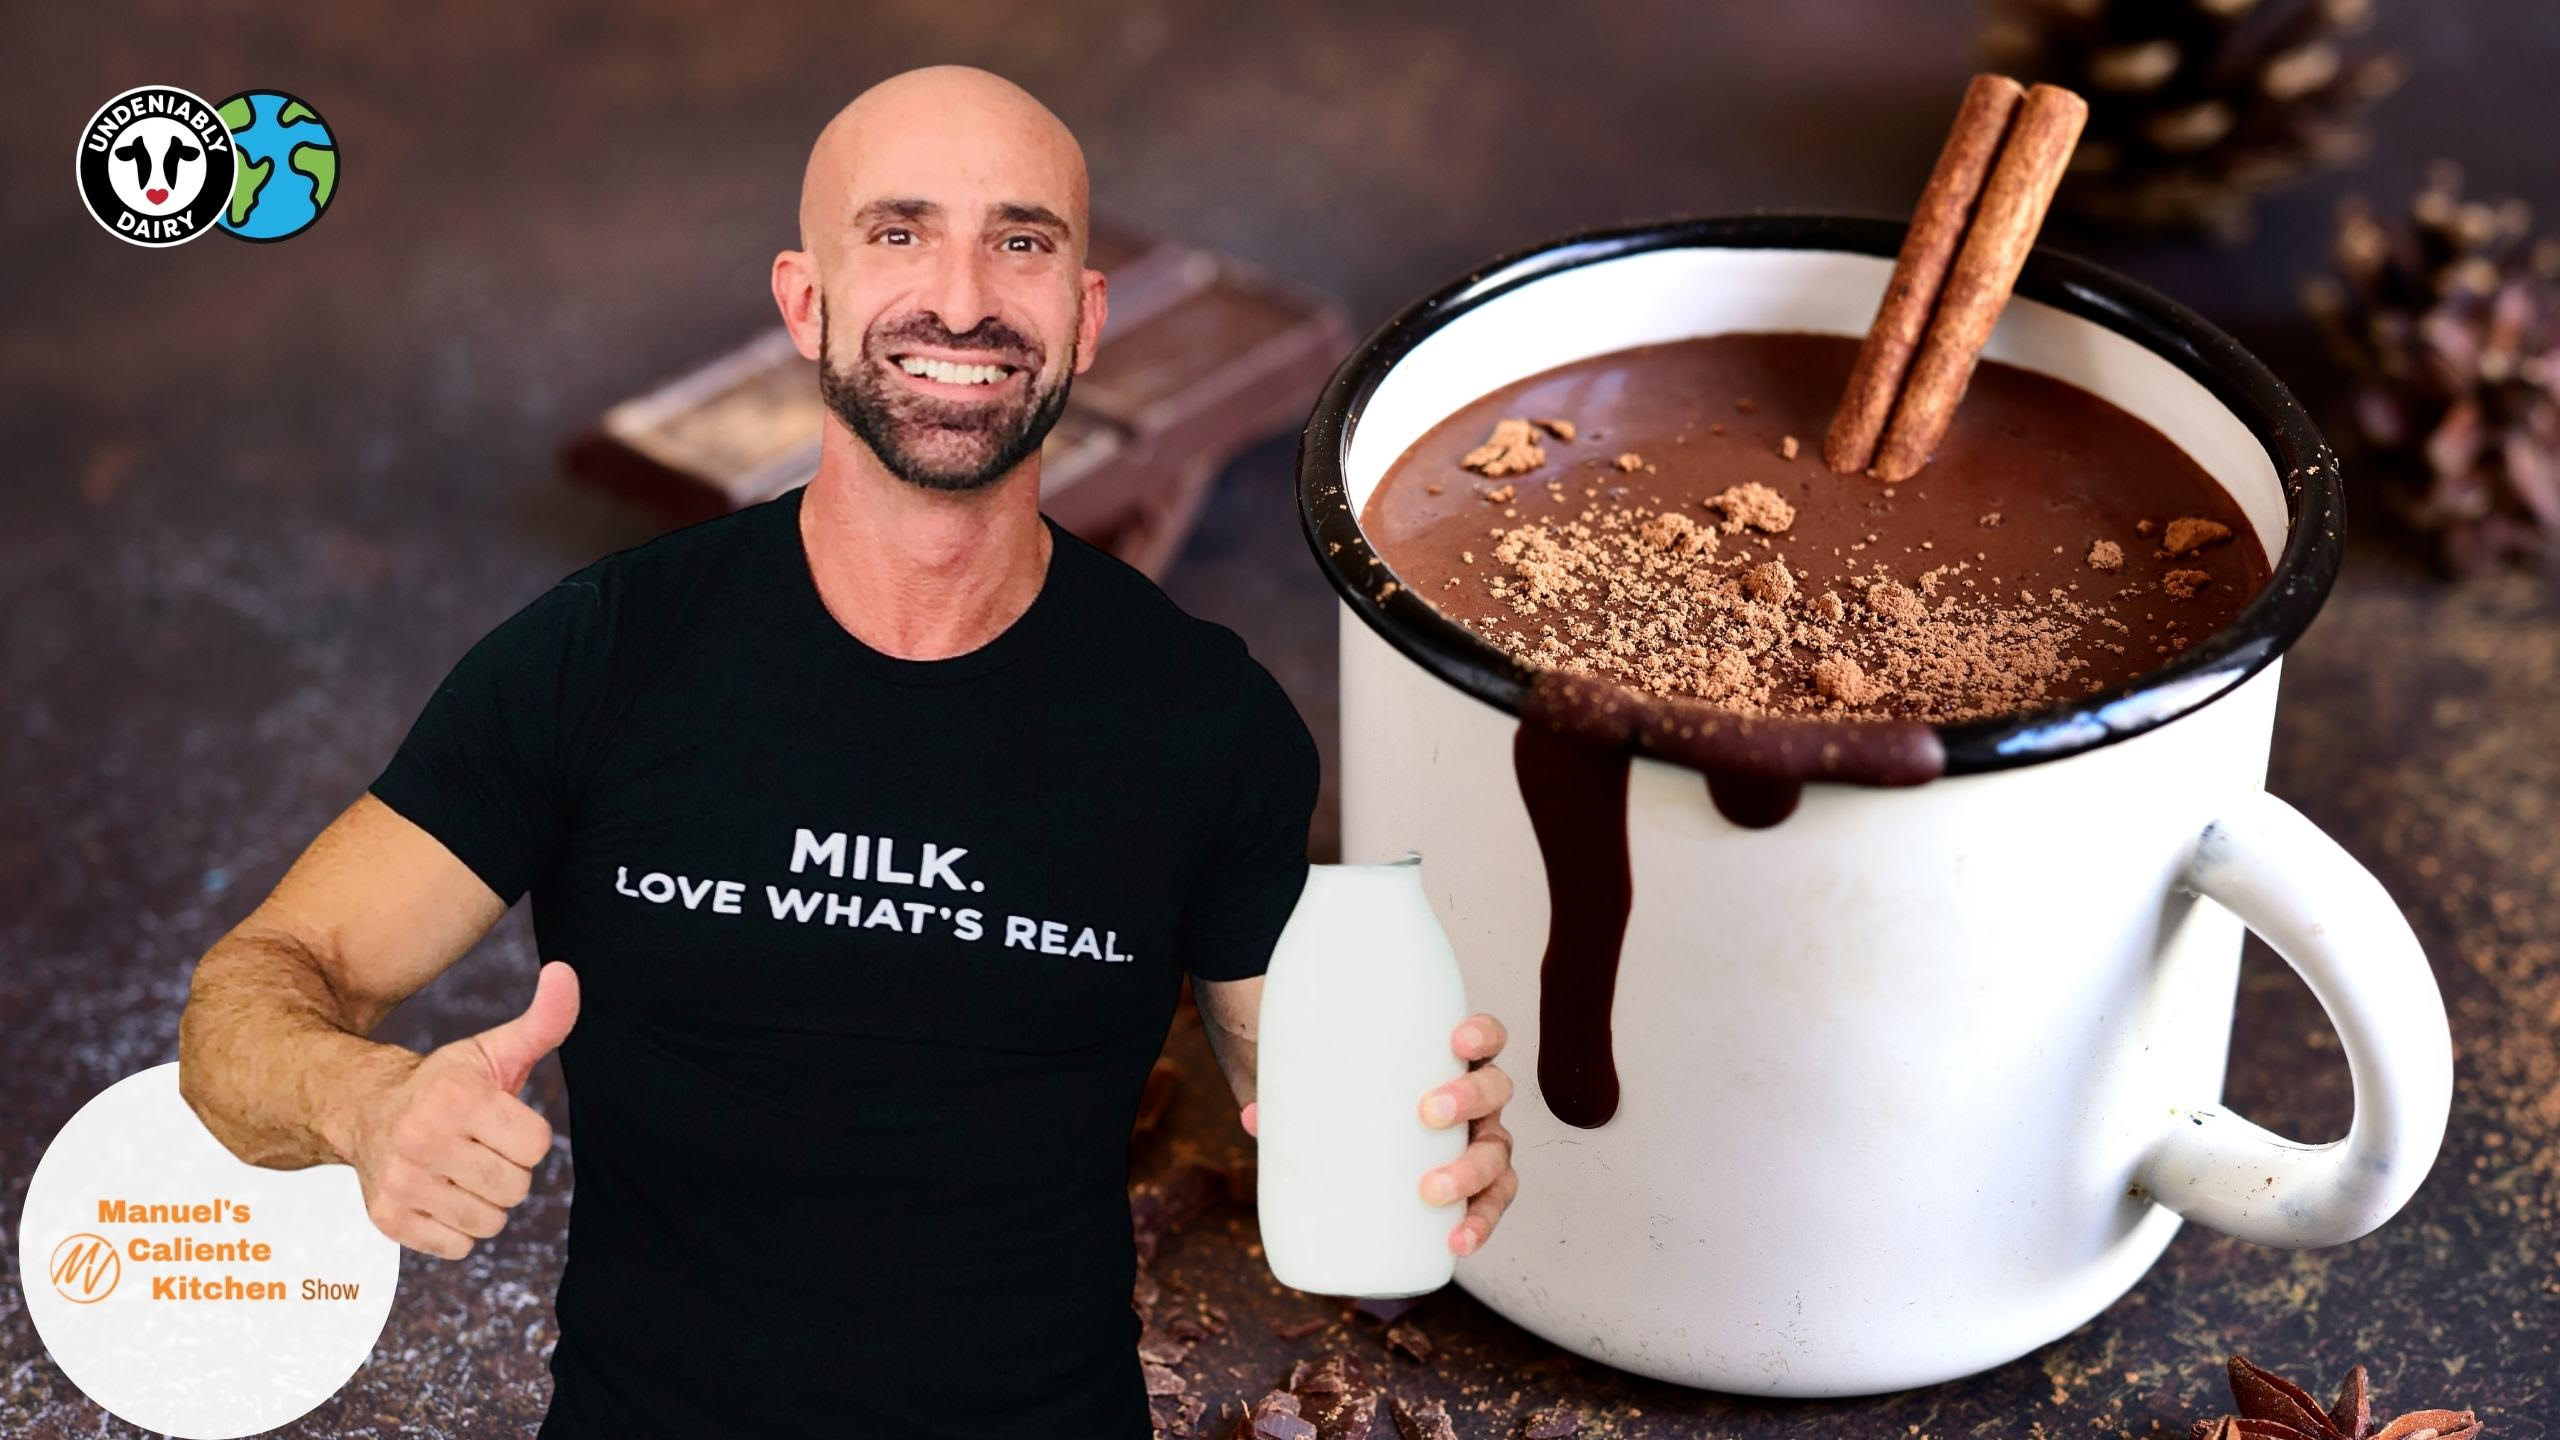 How to Make a Yummy Low-calorie Hot Chocolate with Real Milk